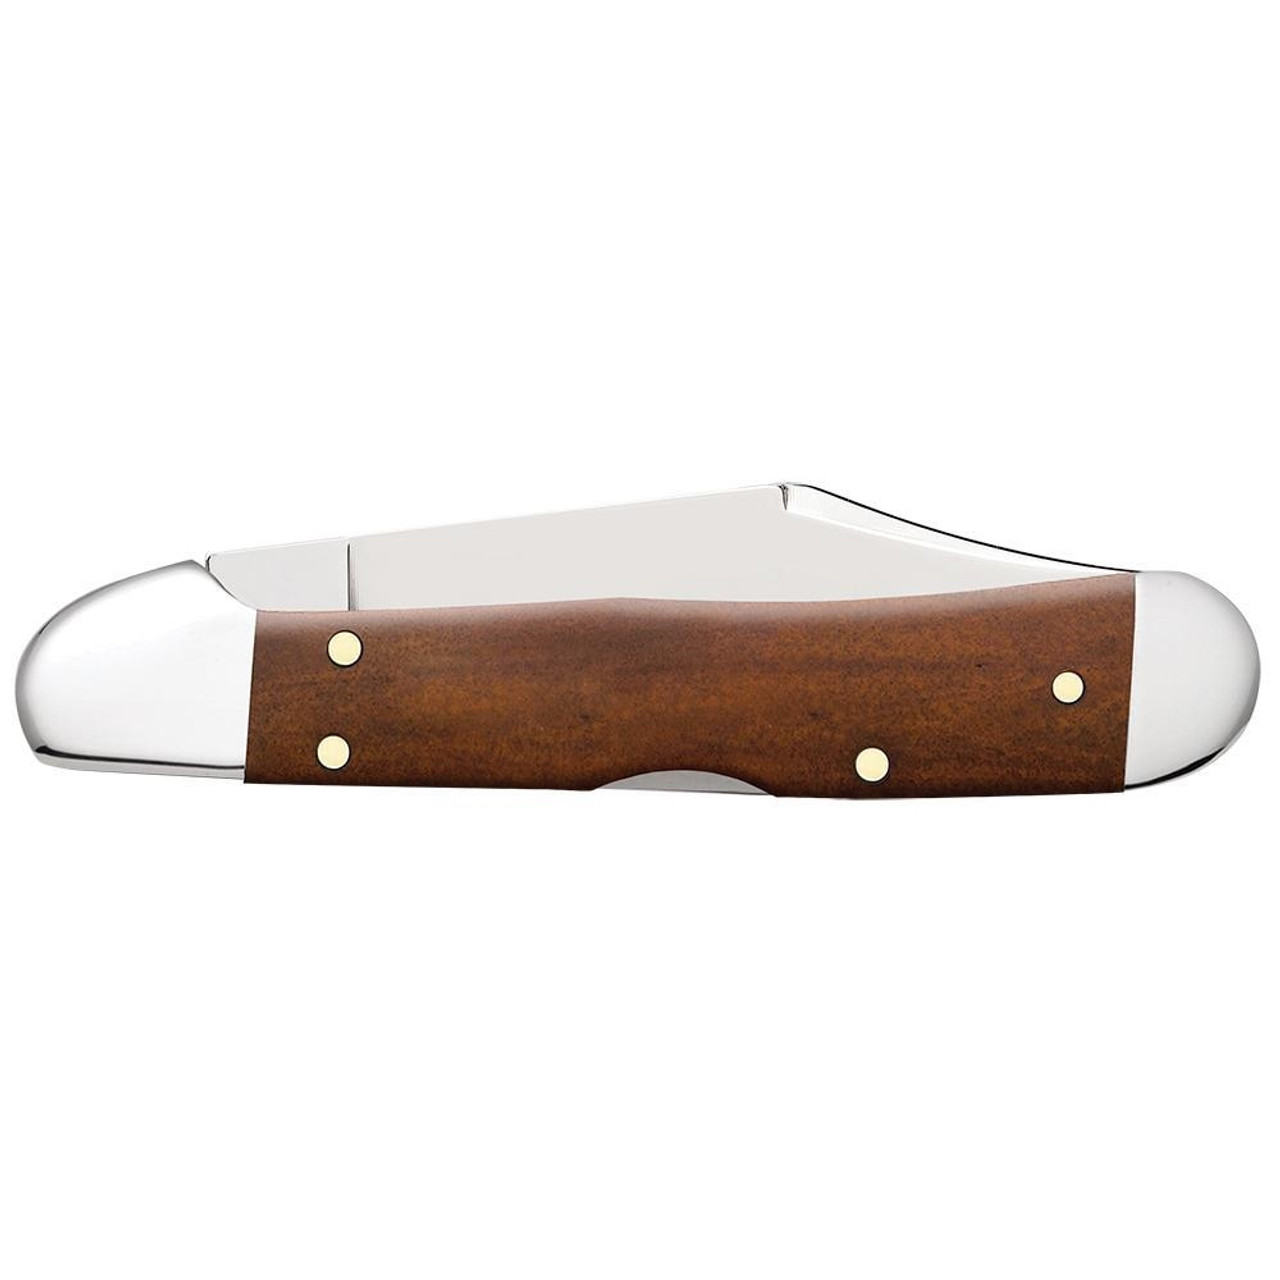 Case Mini CopperLock Chestnut Bone Folder Knife, Satin Blade REAR VIEW